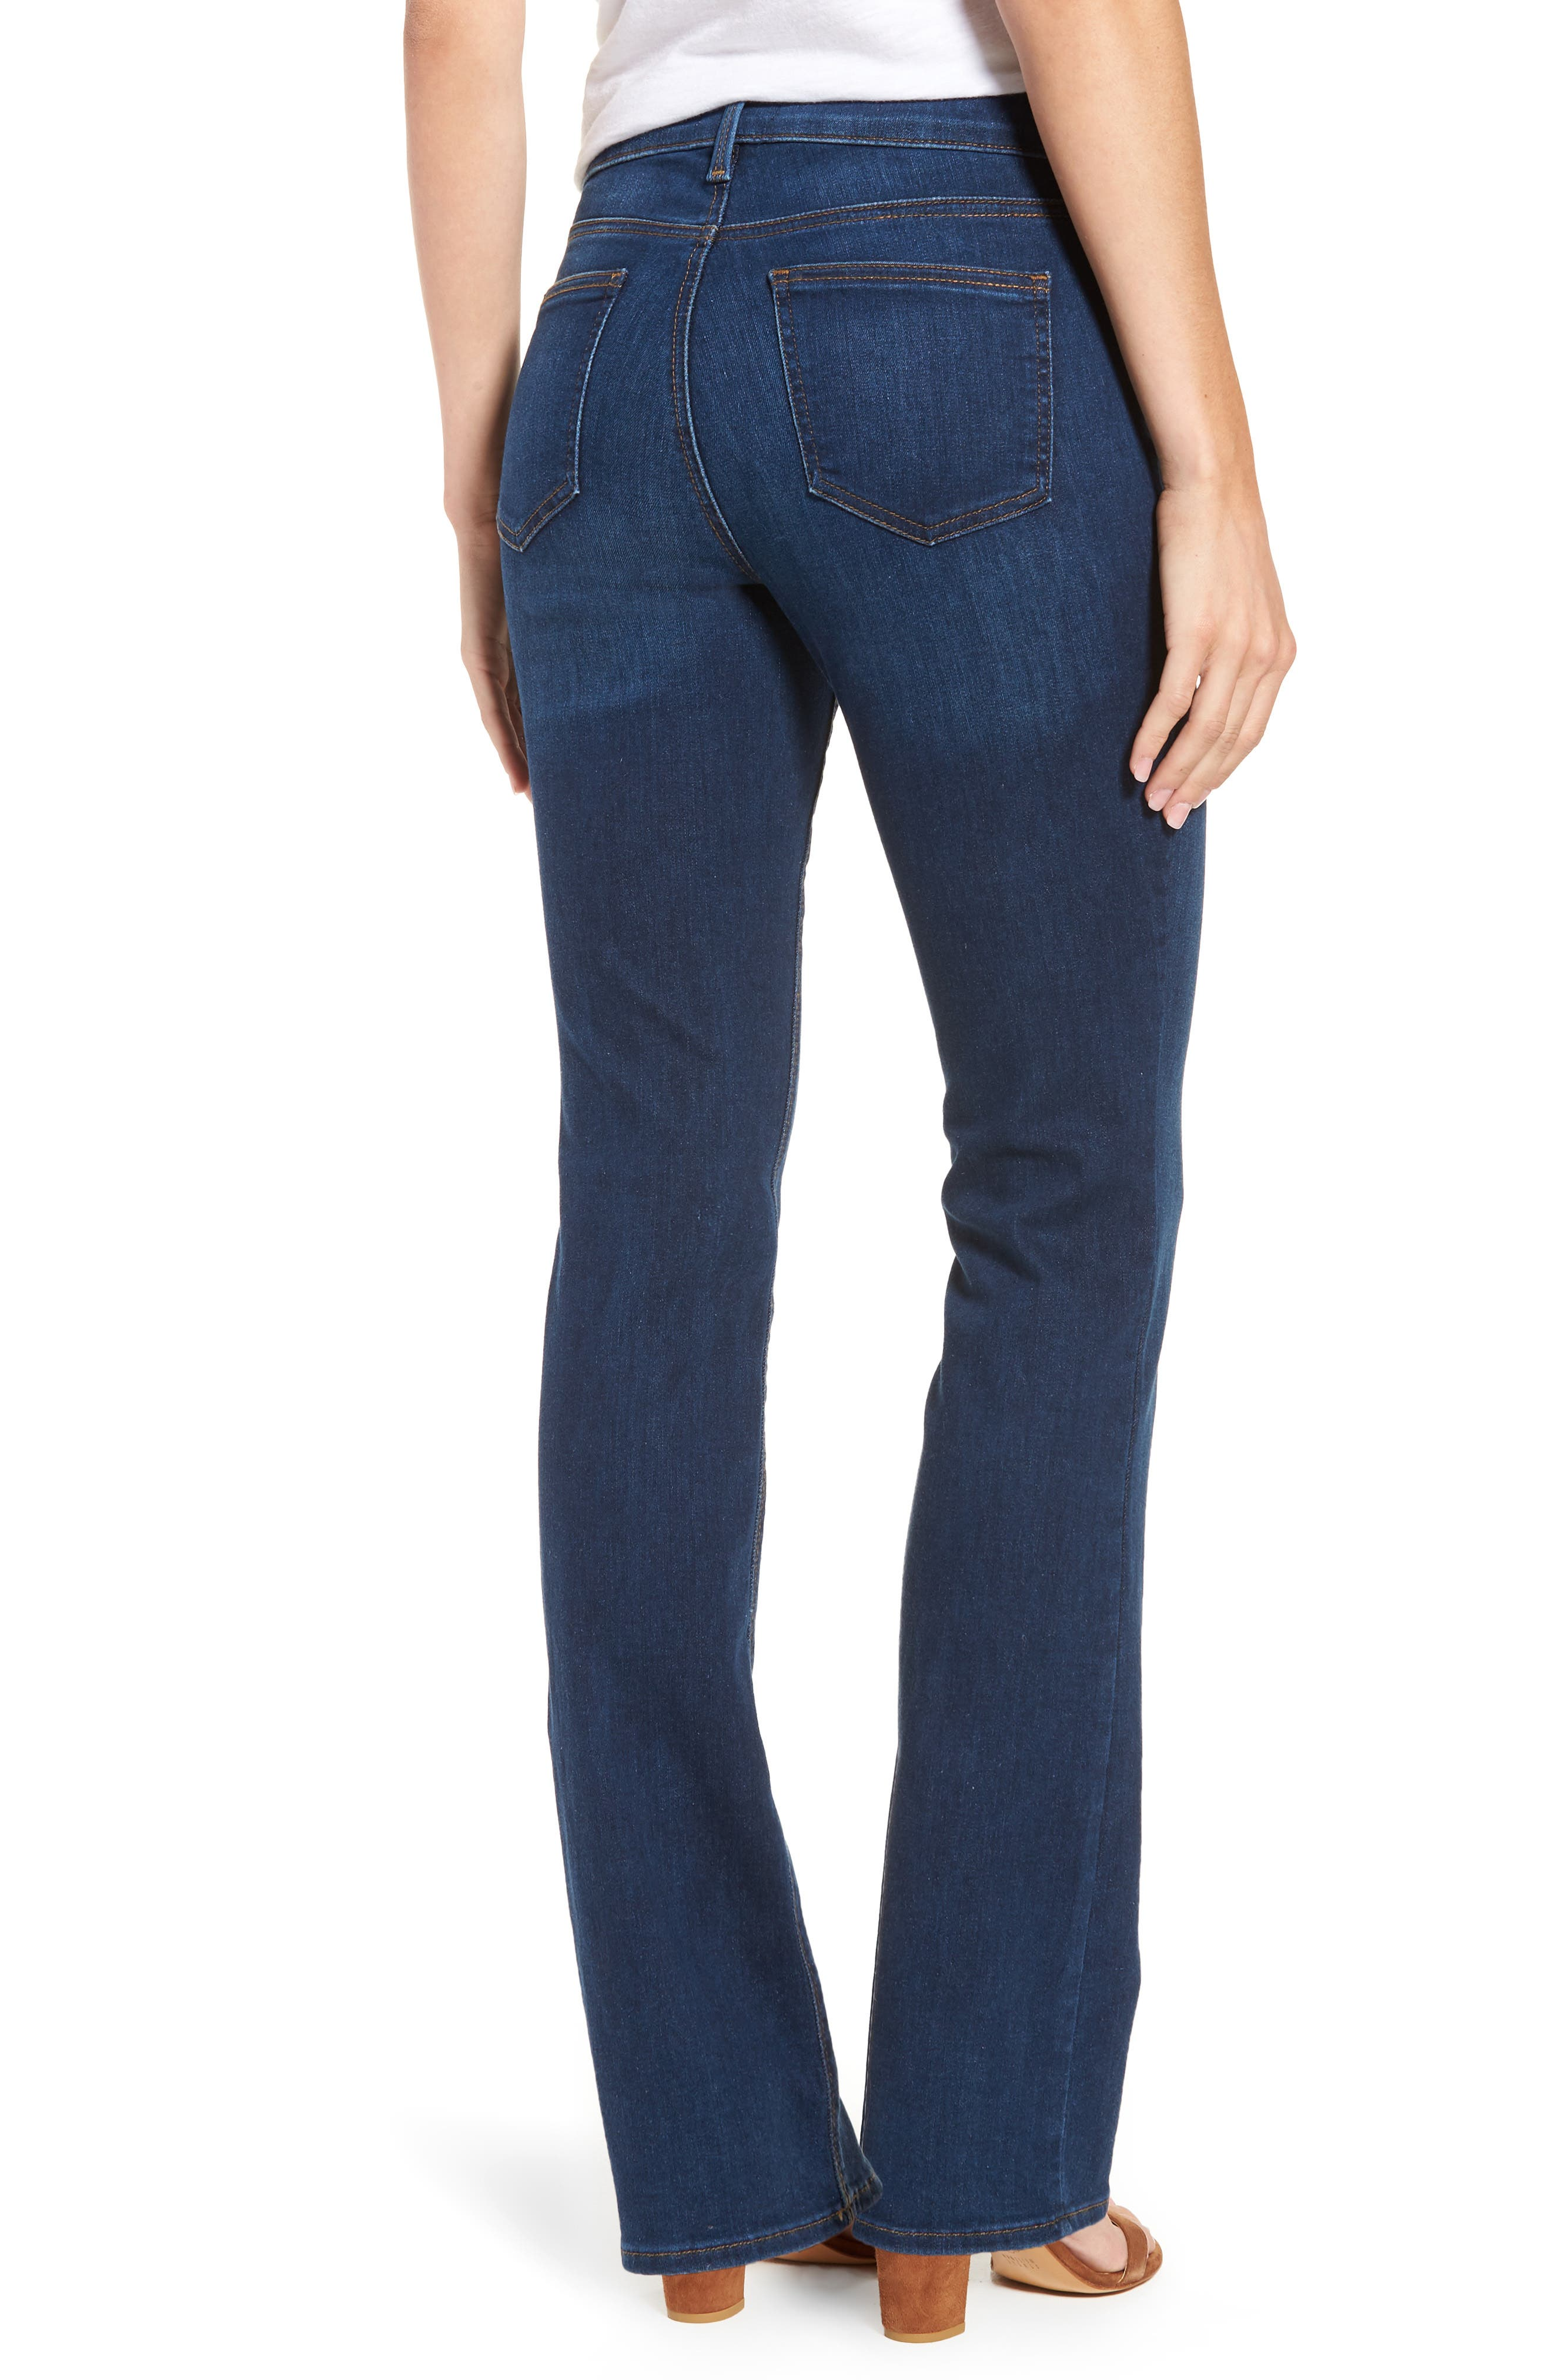 Billie Mini Bootcut Jeans,                             Alternate thumbnail 2, color,                             Cooper